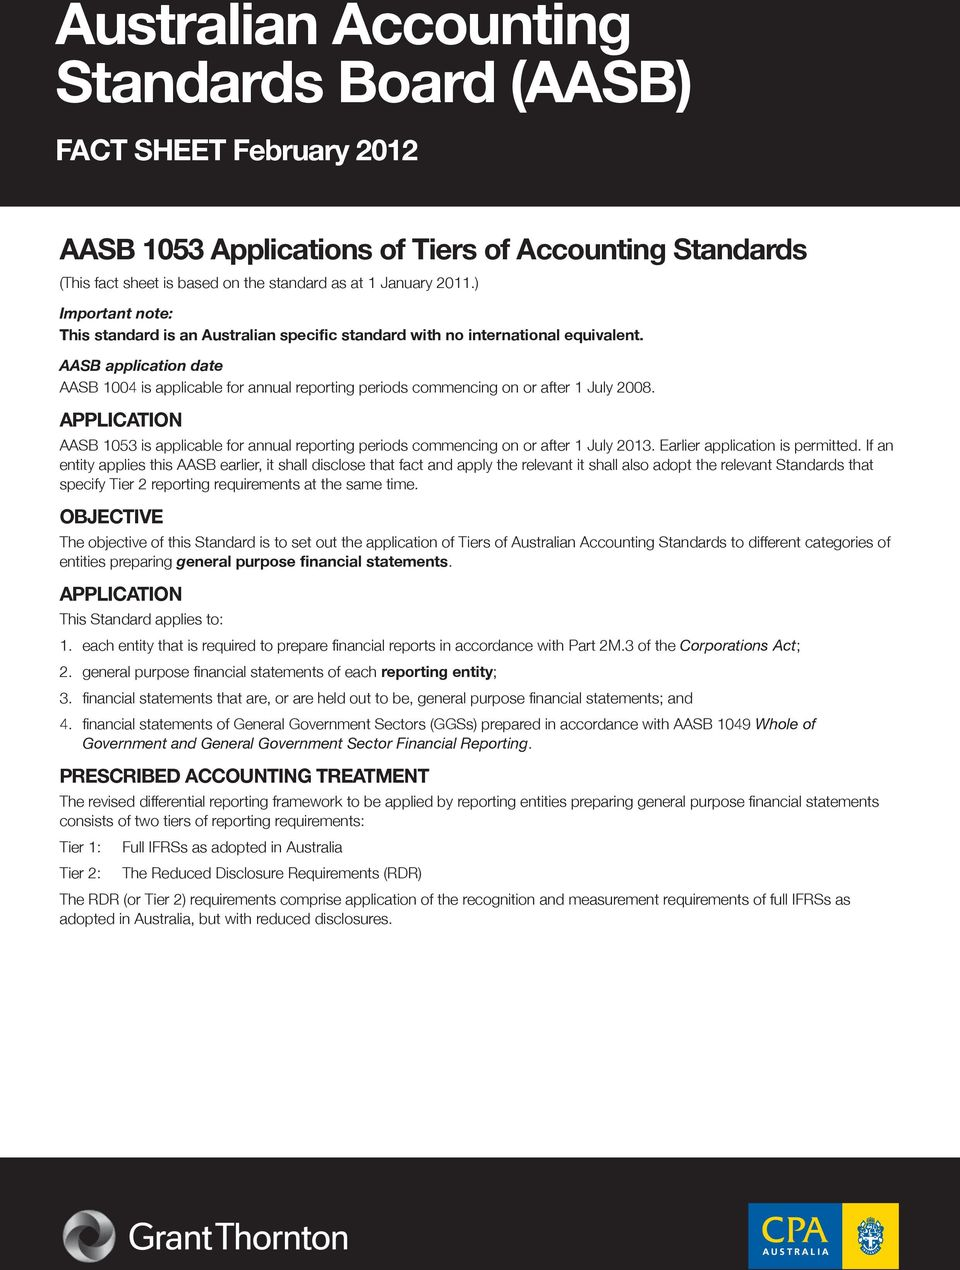 AASB application date AASB 1004 is applicable for annual reporting periods commencing on or after 1 July 2008.